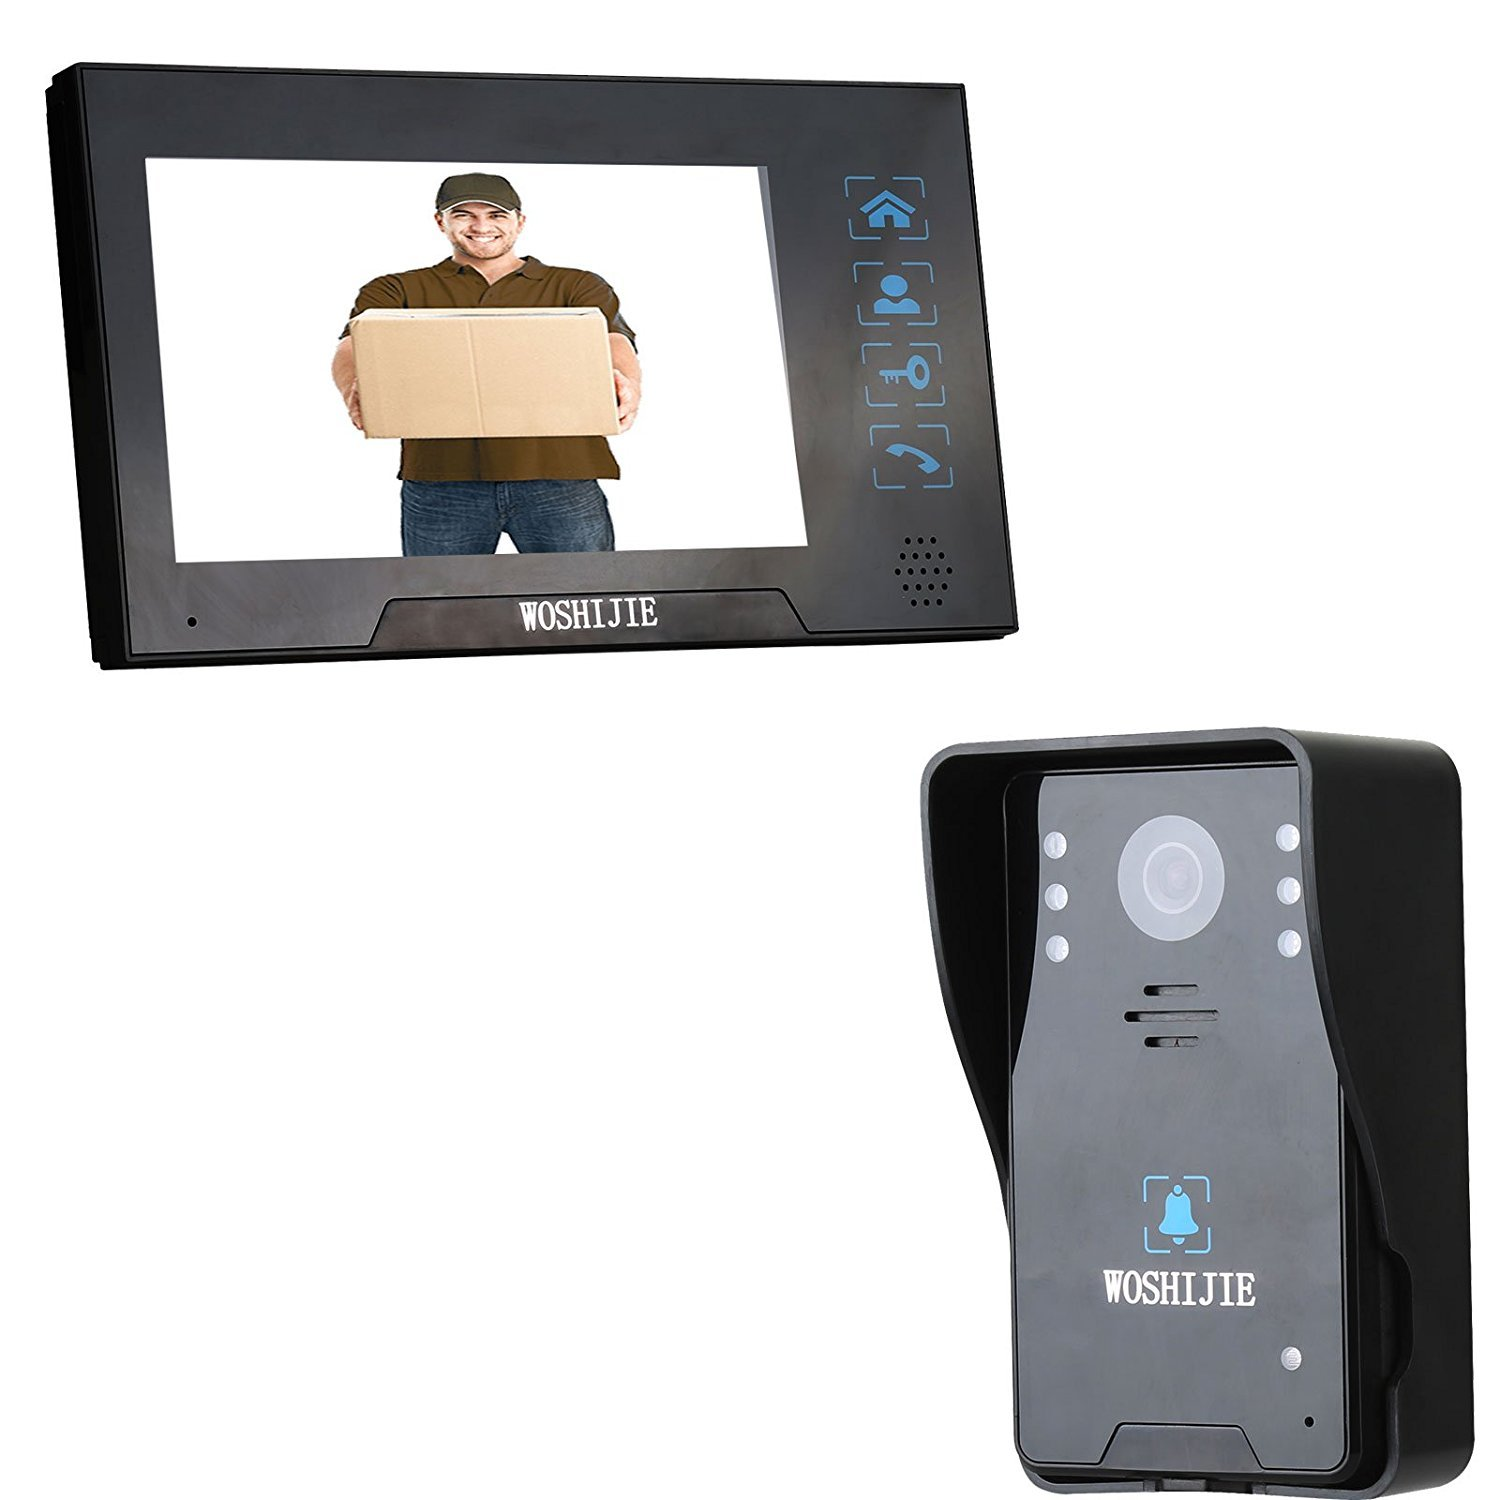 7 Inch Color LCD Wired Video Doorbell Phones Bells Chimes Rainproof Intercom IR Night Vision 1000 TVL HD COMS Camera Home Security Systems Black WOSHIJIE (One Camera One Monitor)